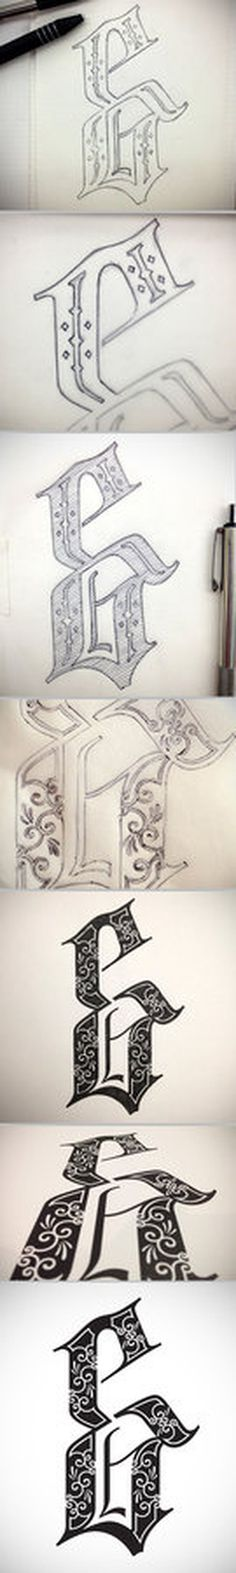 Amperos font, full process, hand lettered ampersand series, by Petre Spassov